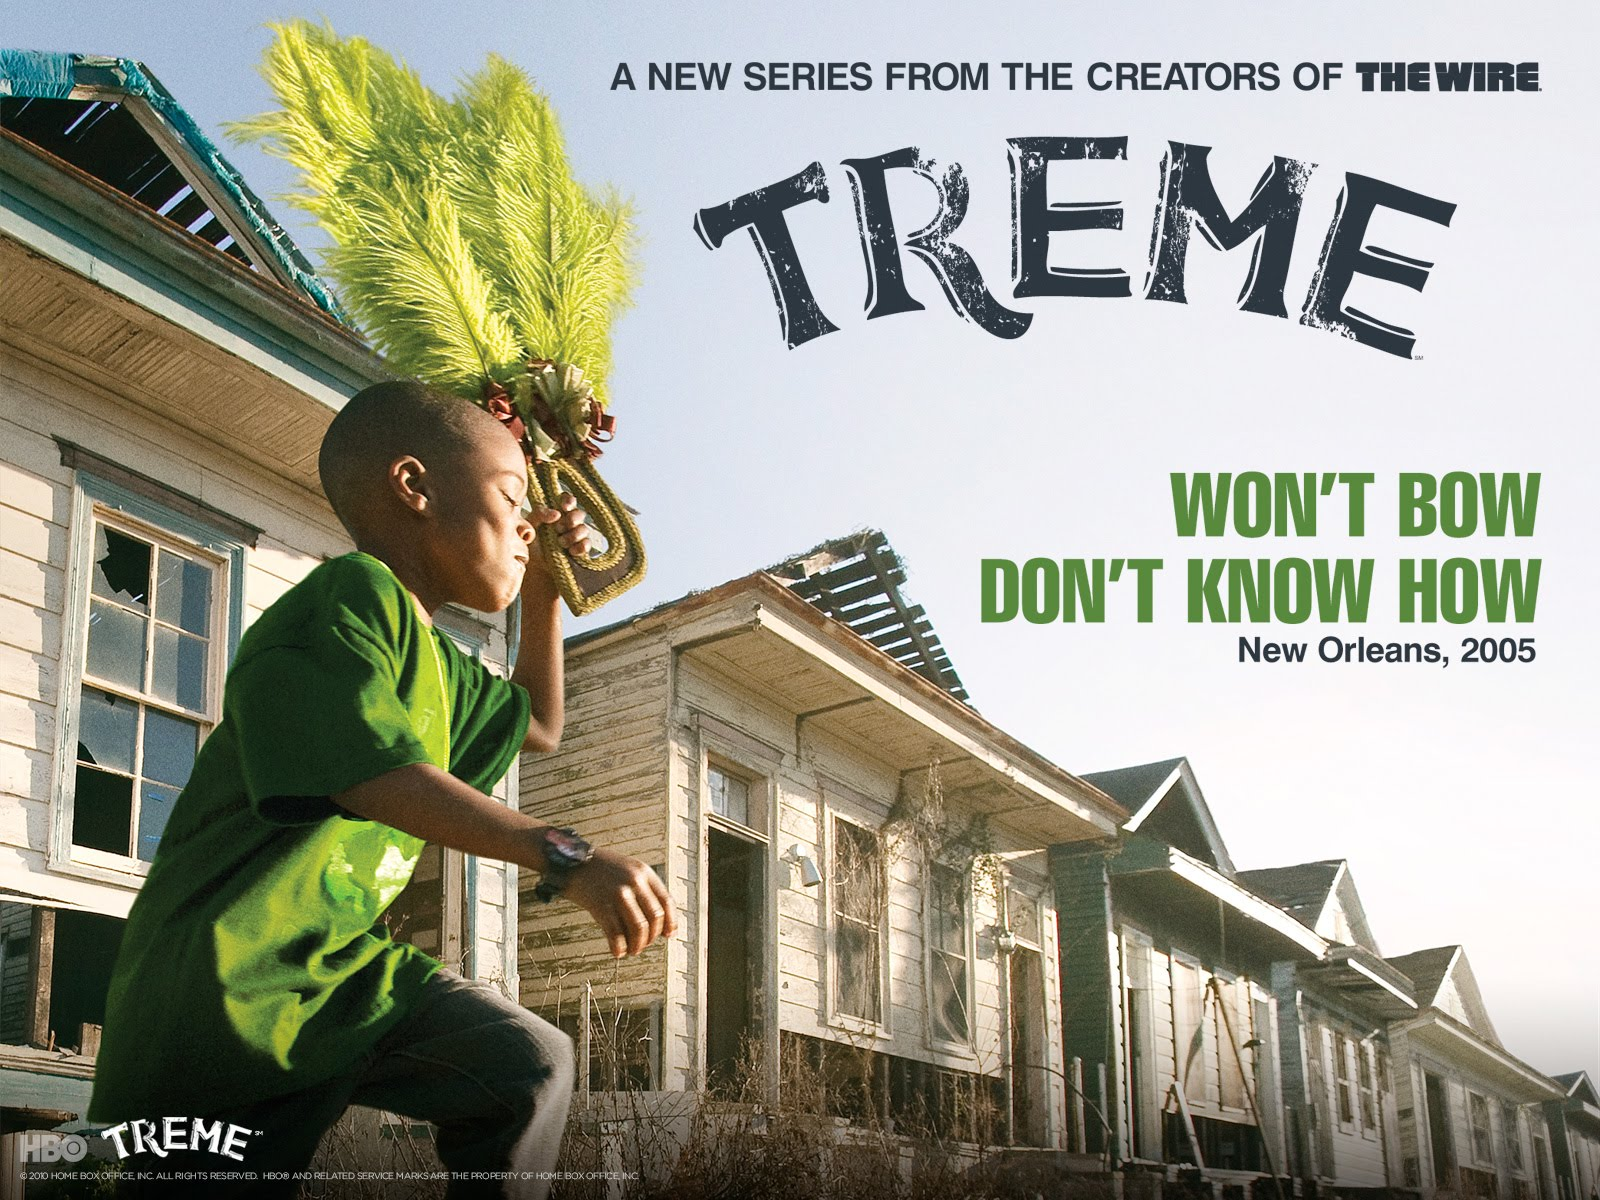 Serie TV Treme Wallpaper-treme-1600